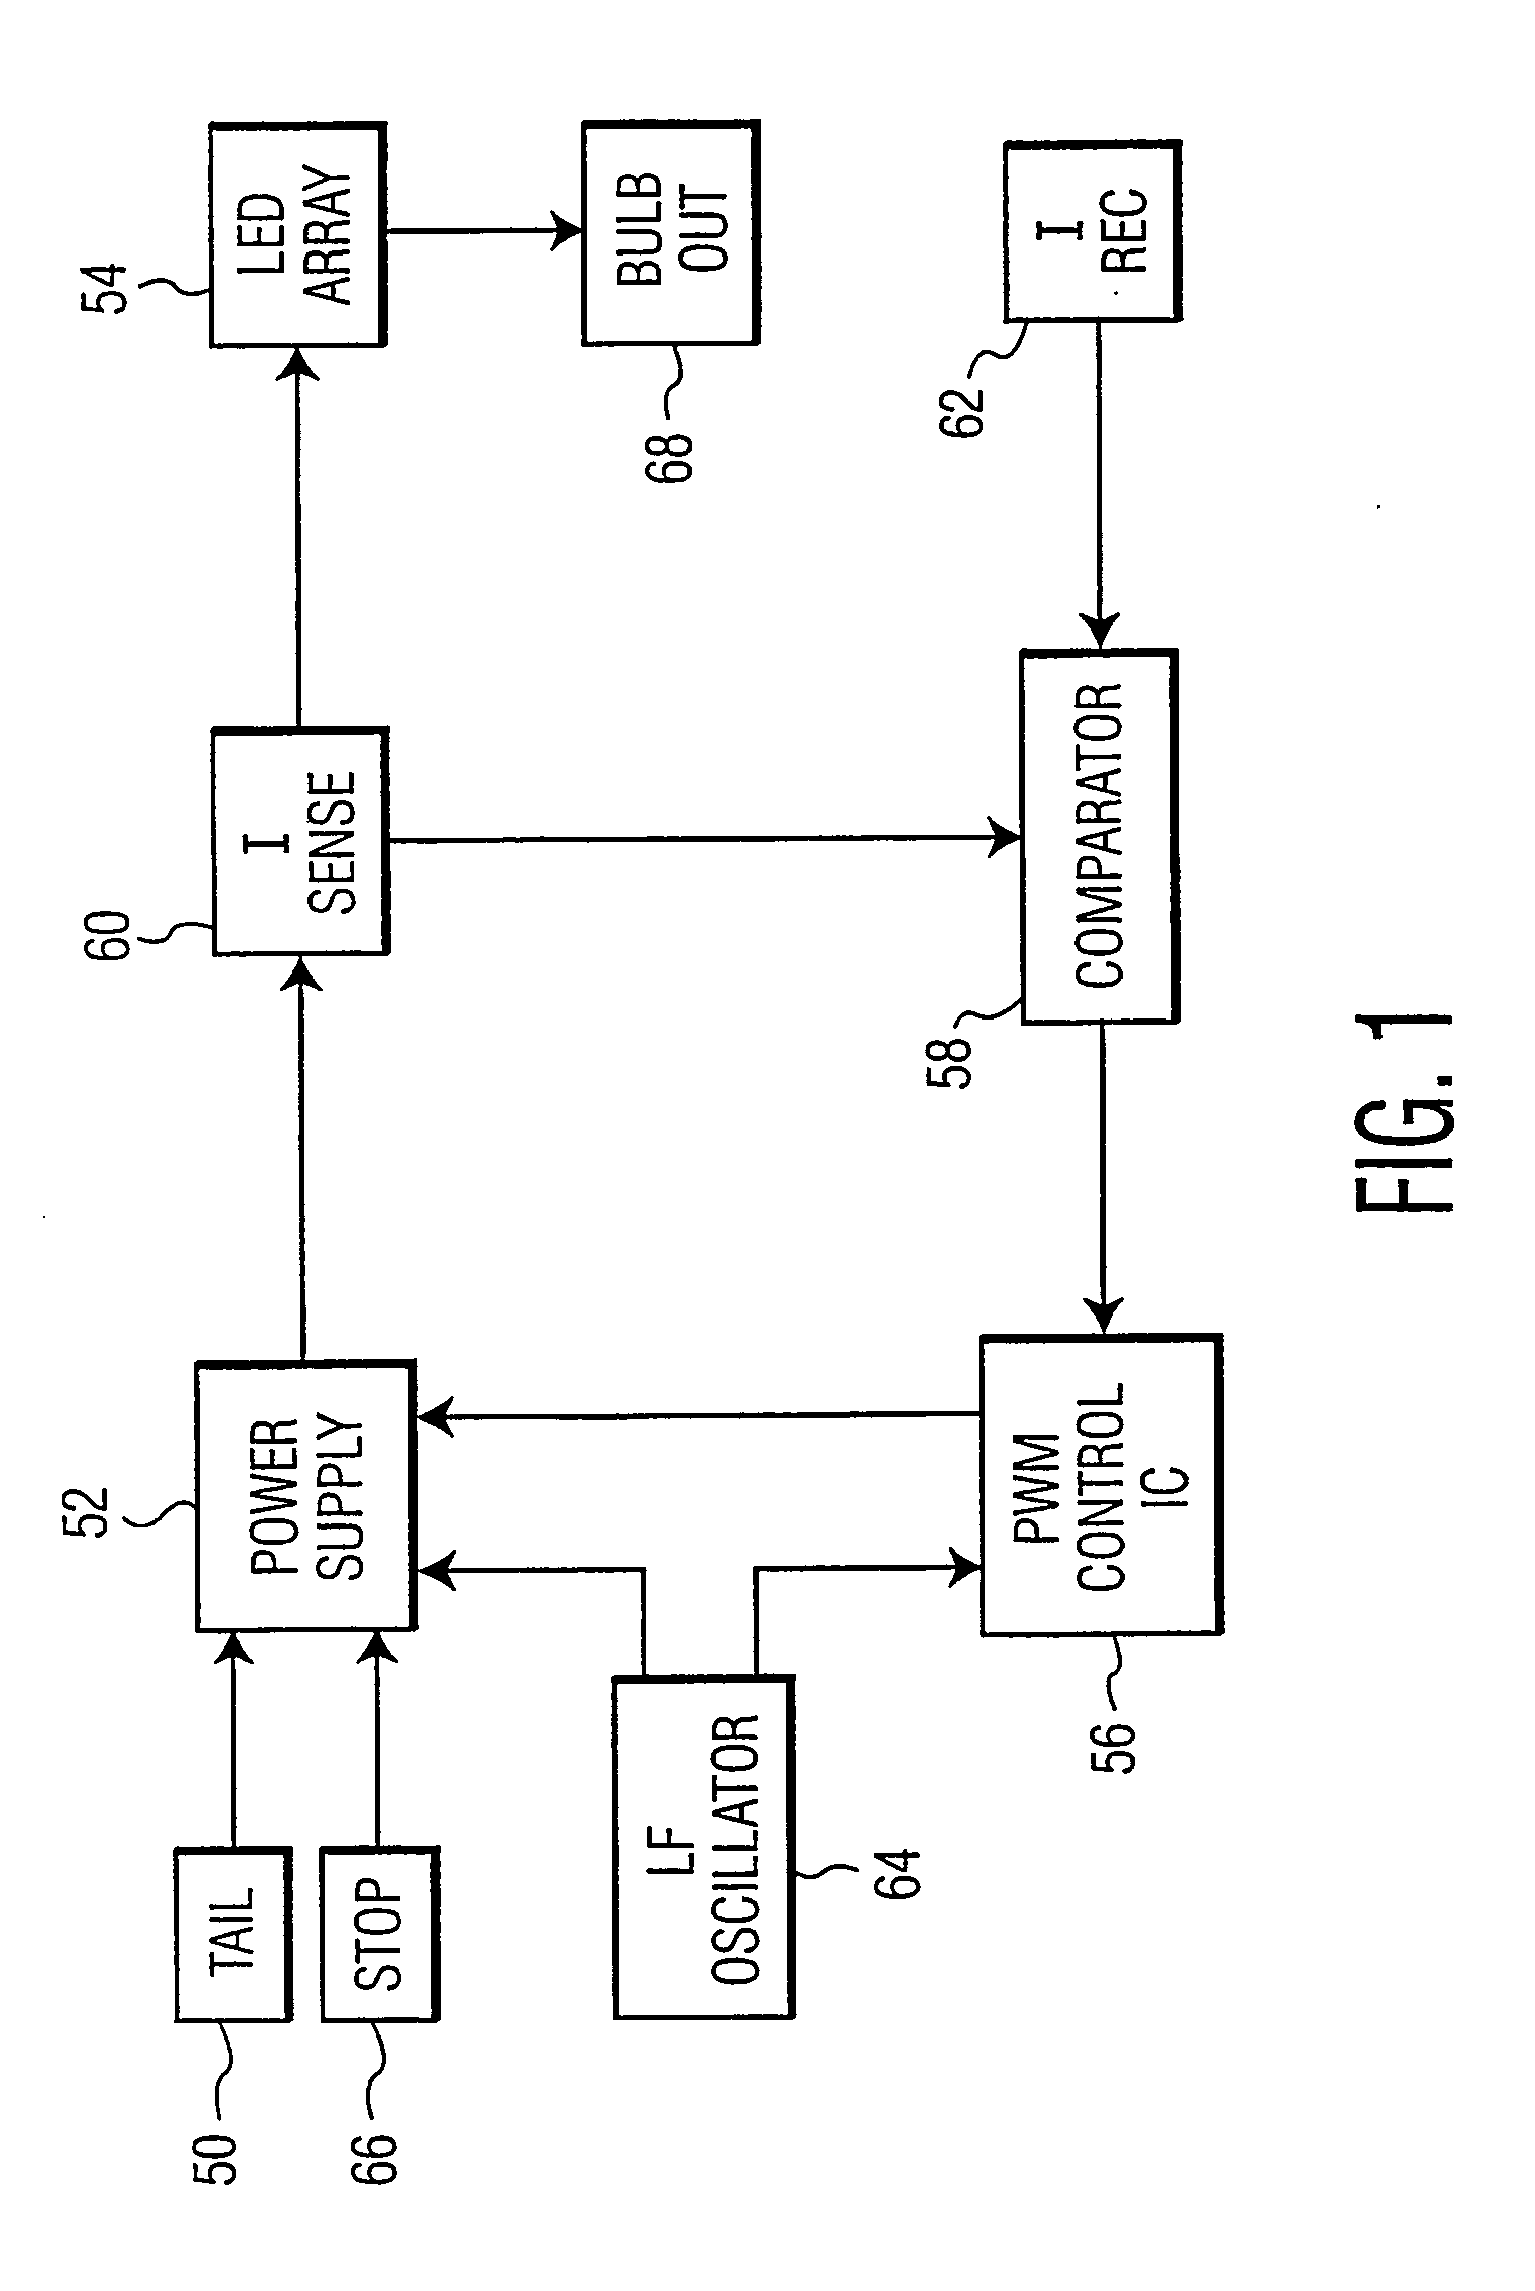 ep1459599b1 led driver circuit with pwm output google patents